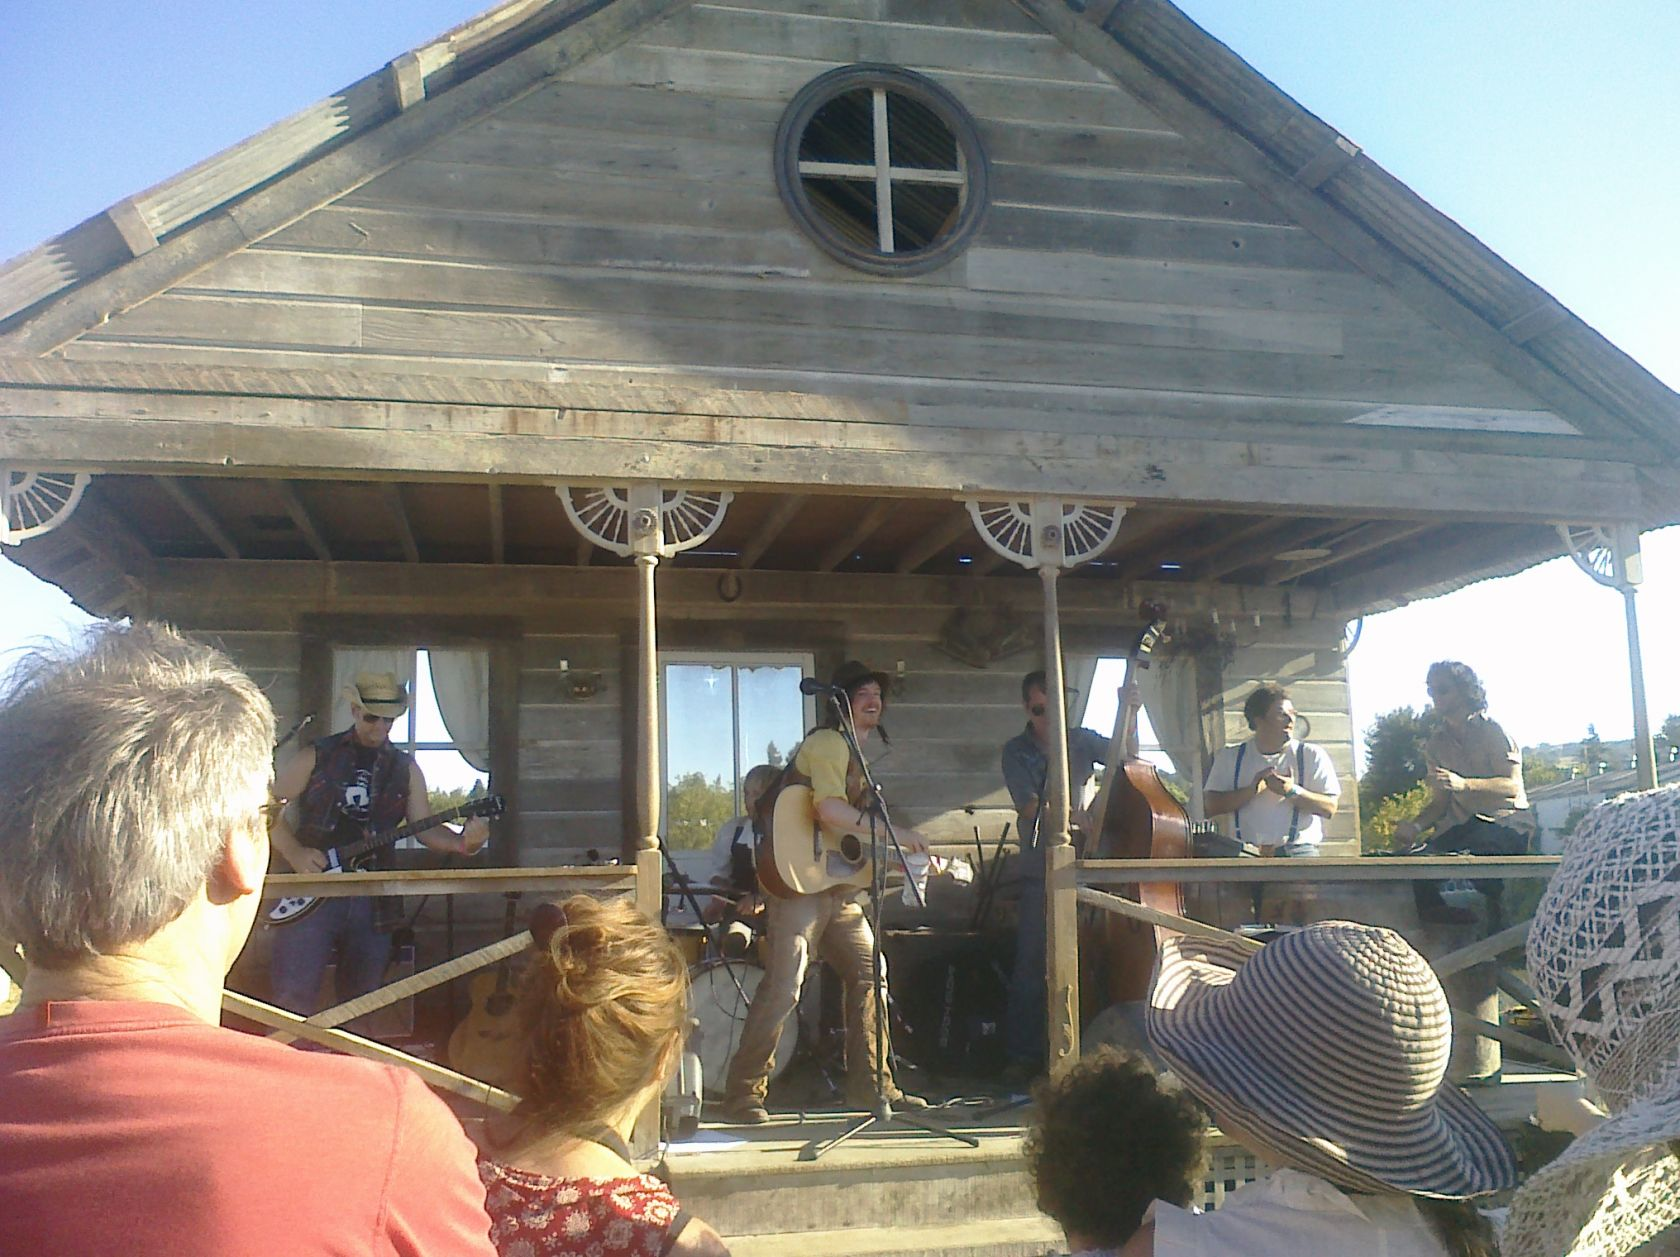 Front Porch - David Luning Band - Petaluma Rivertown Revival 2012. Photo by Summer Burkes